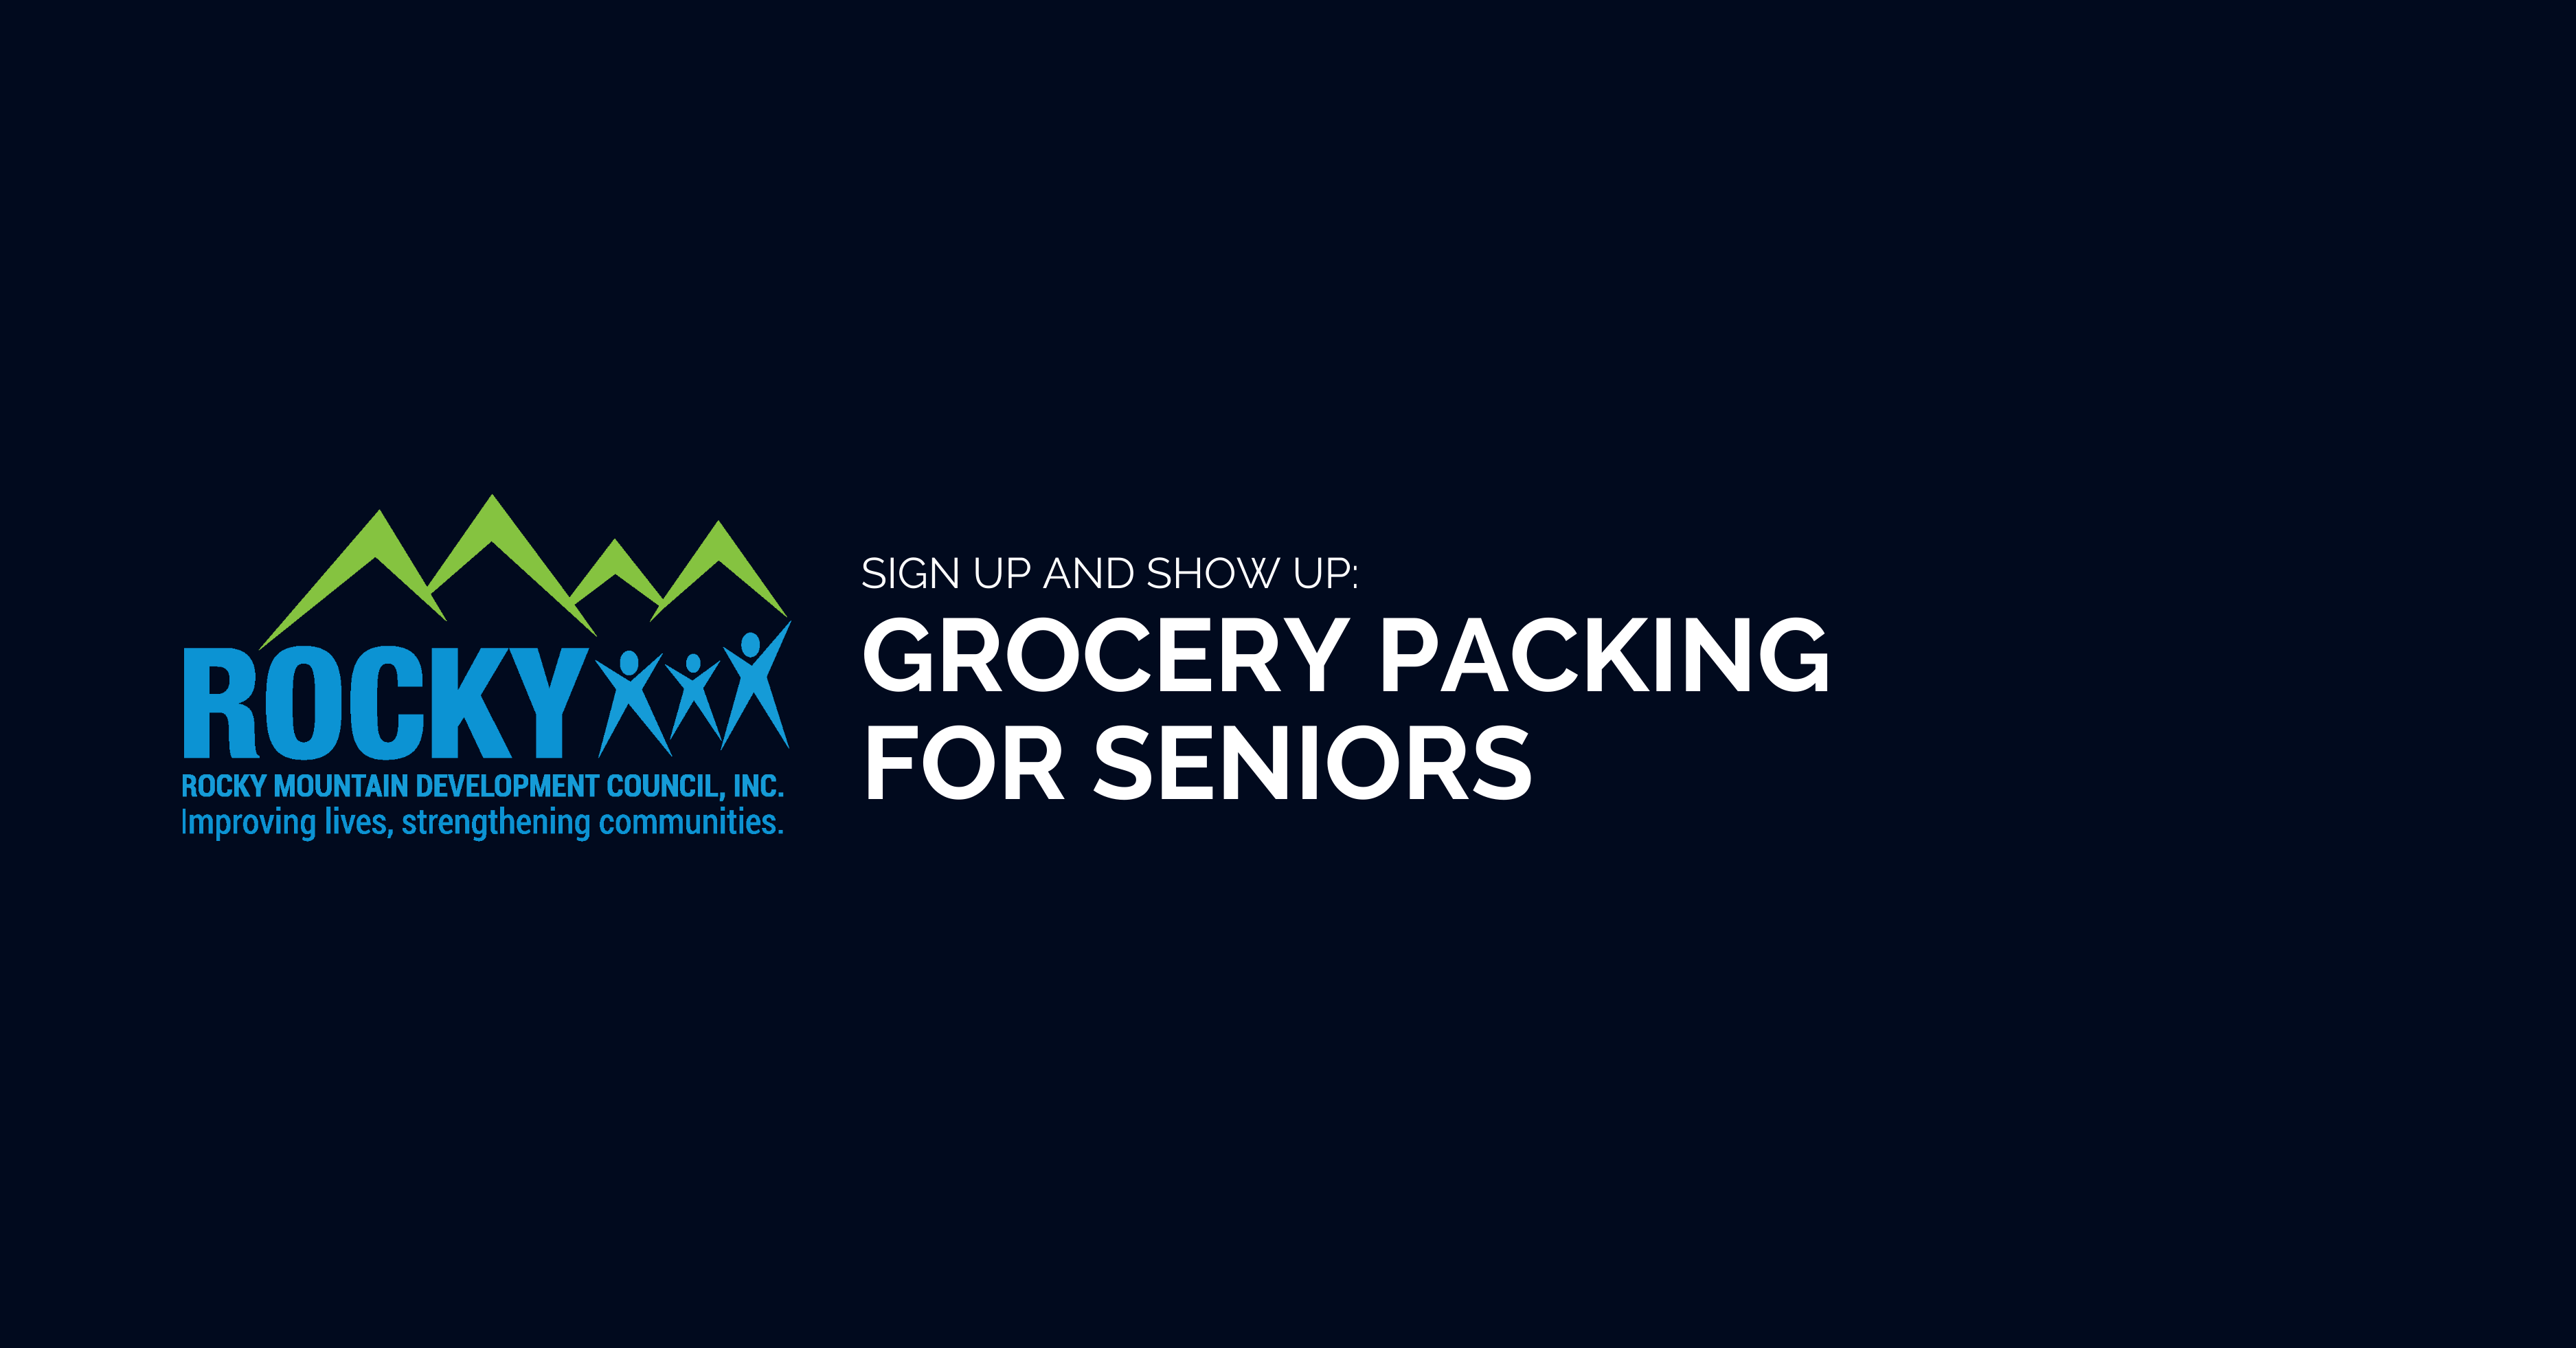 Grocery Packing for Seniors